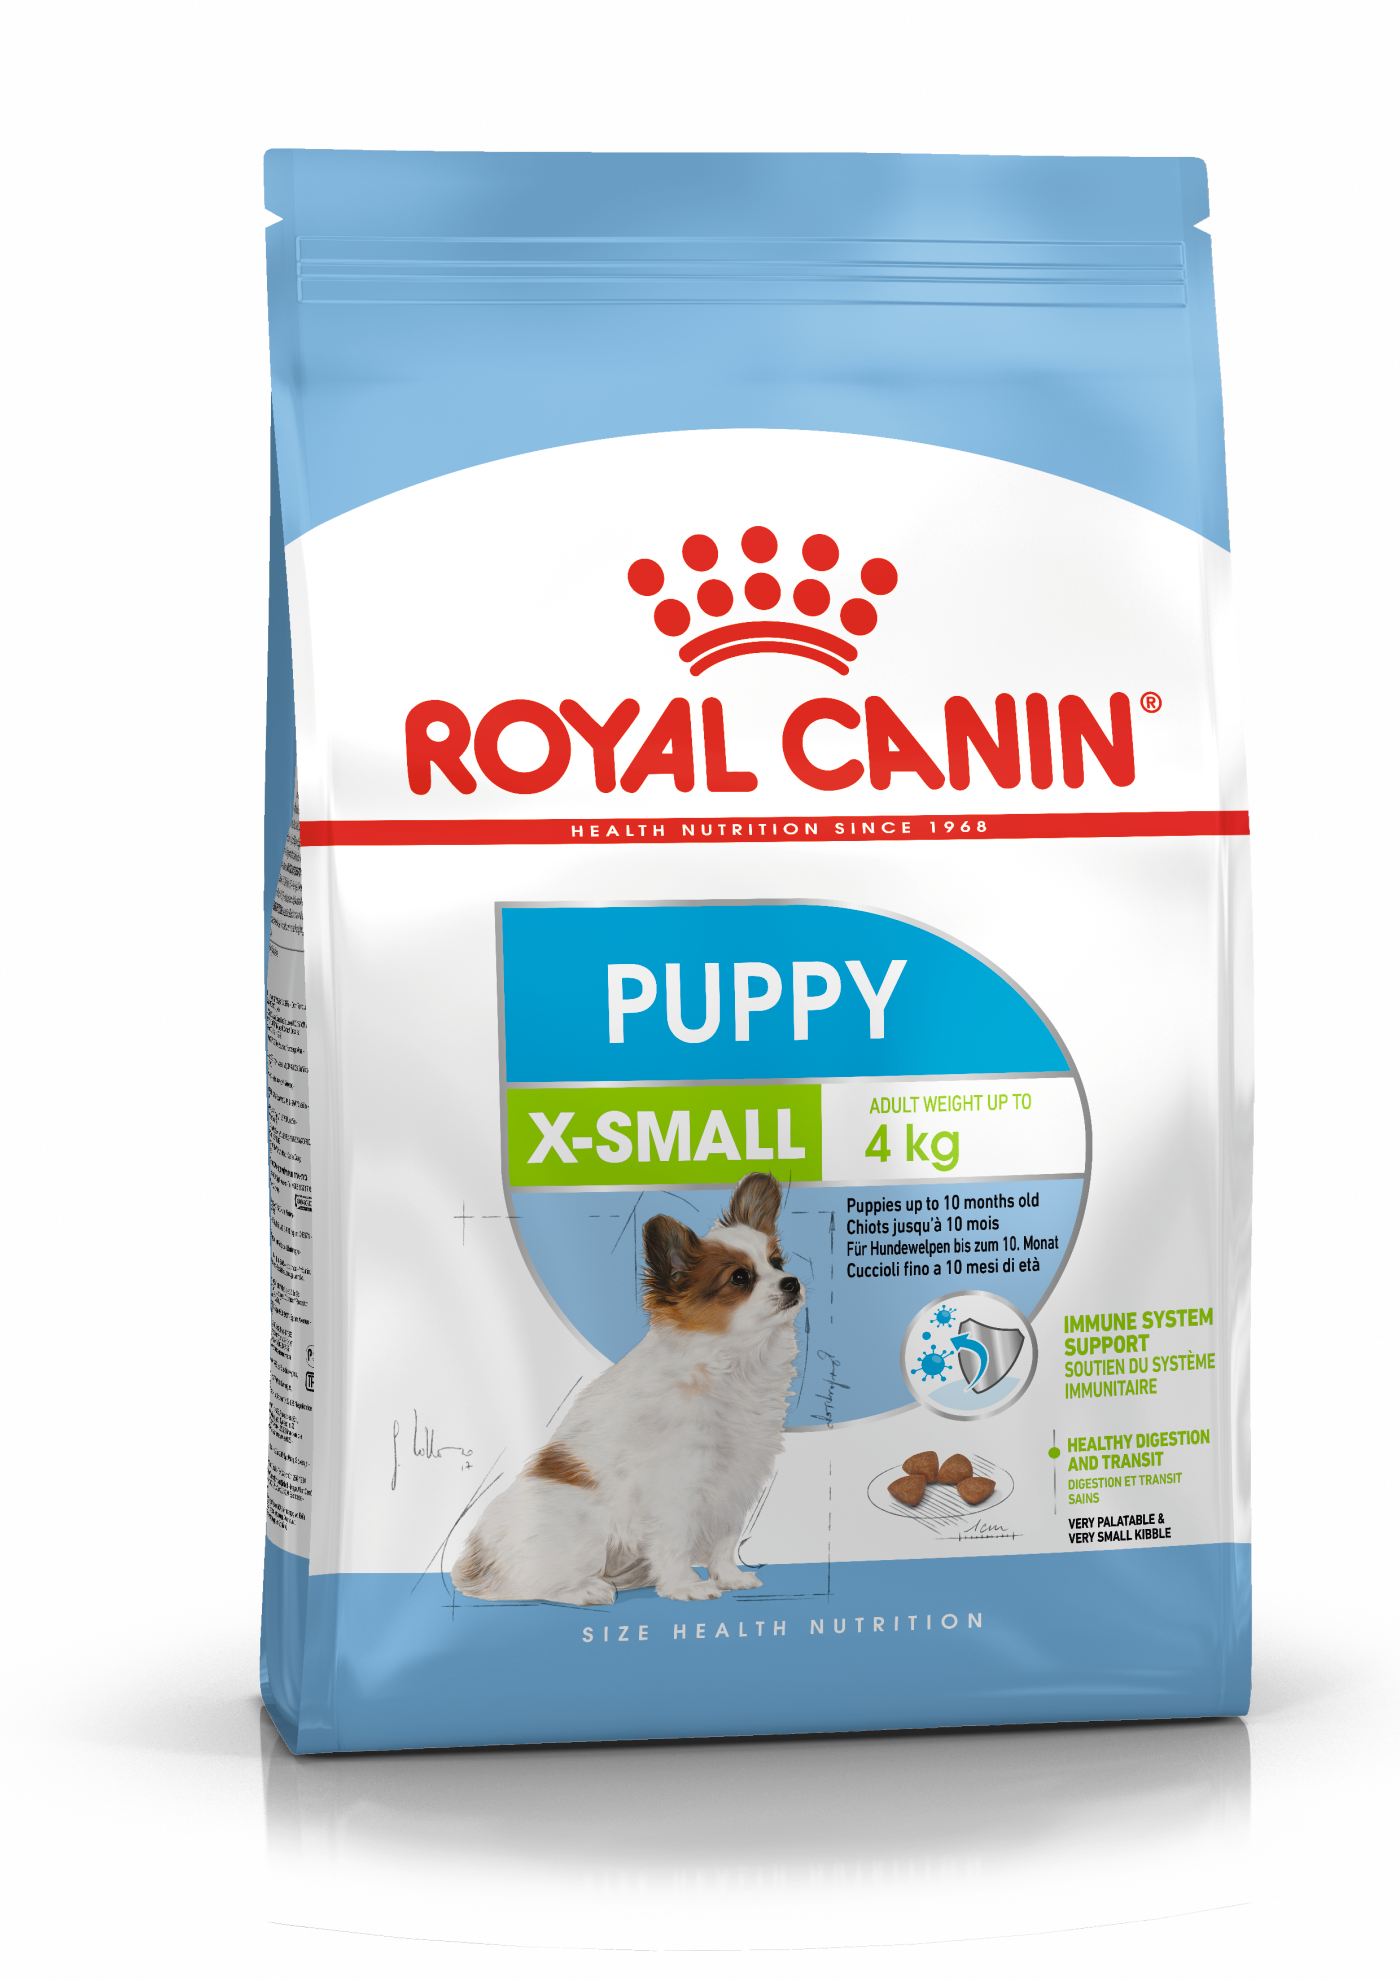 X-small Puppy product image